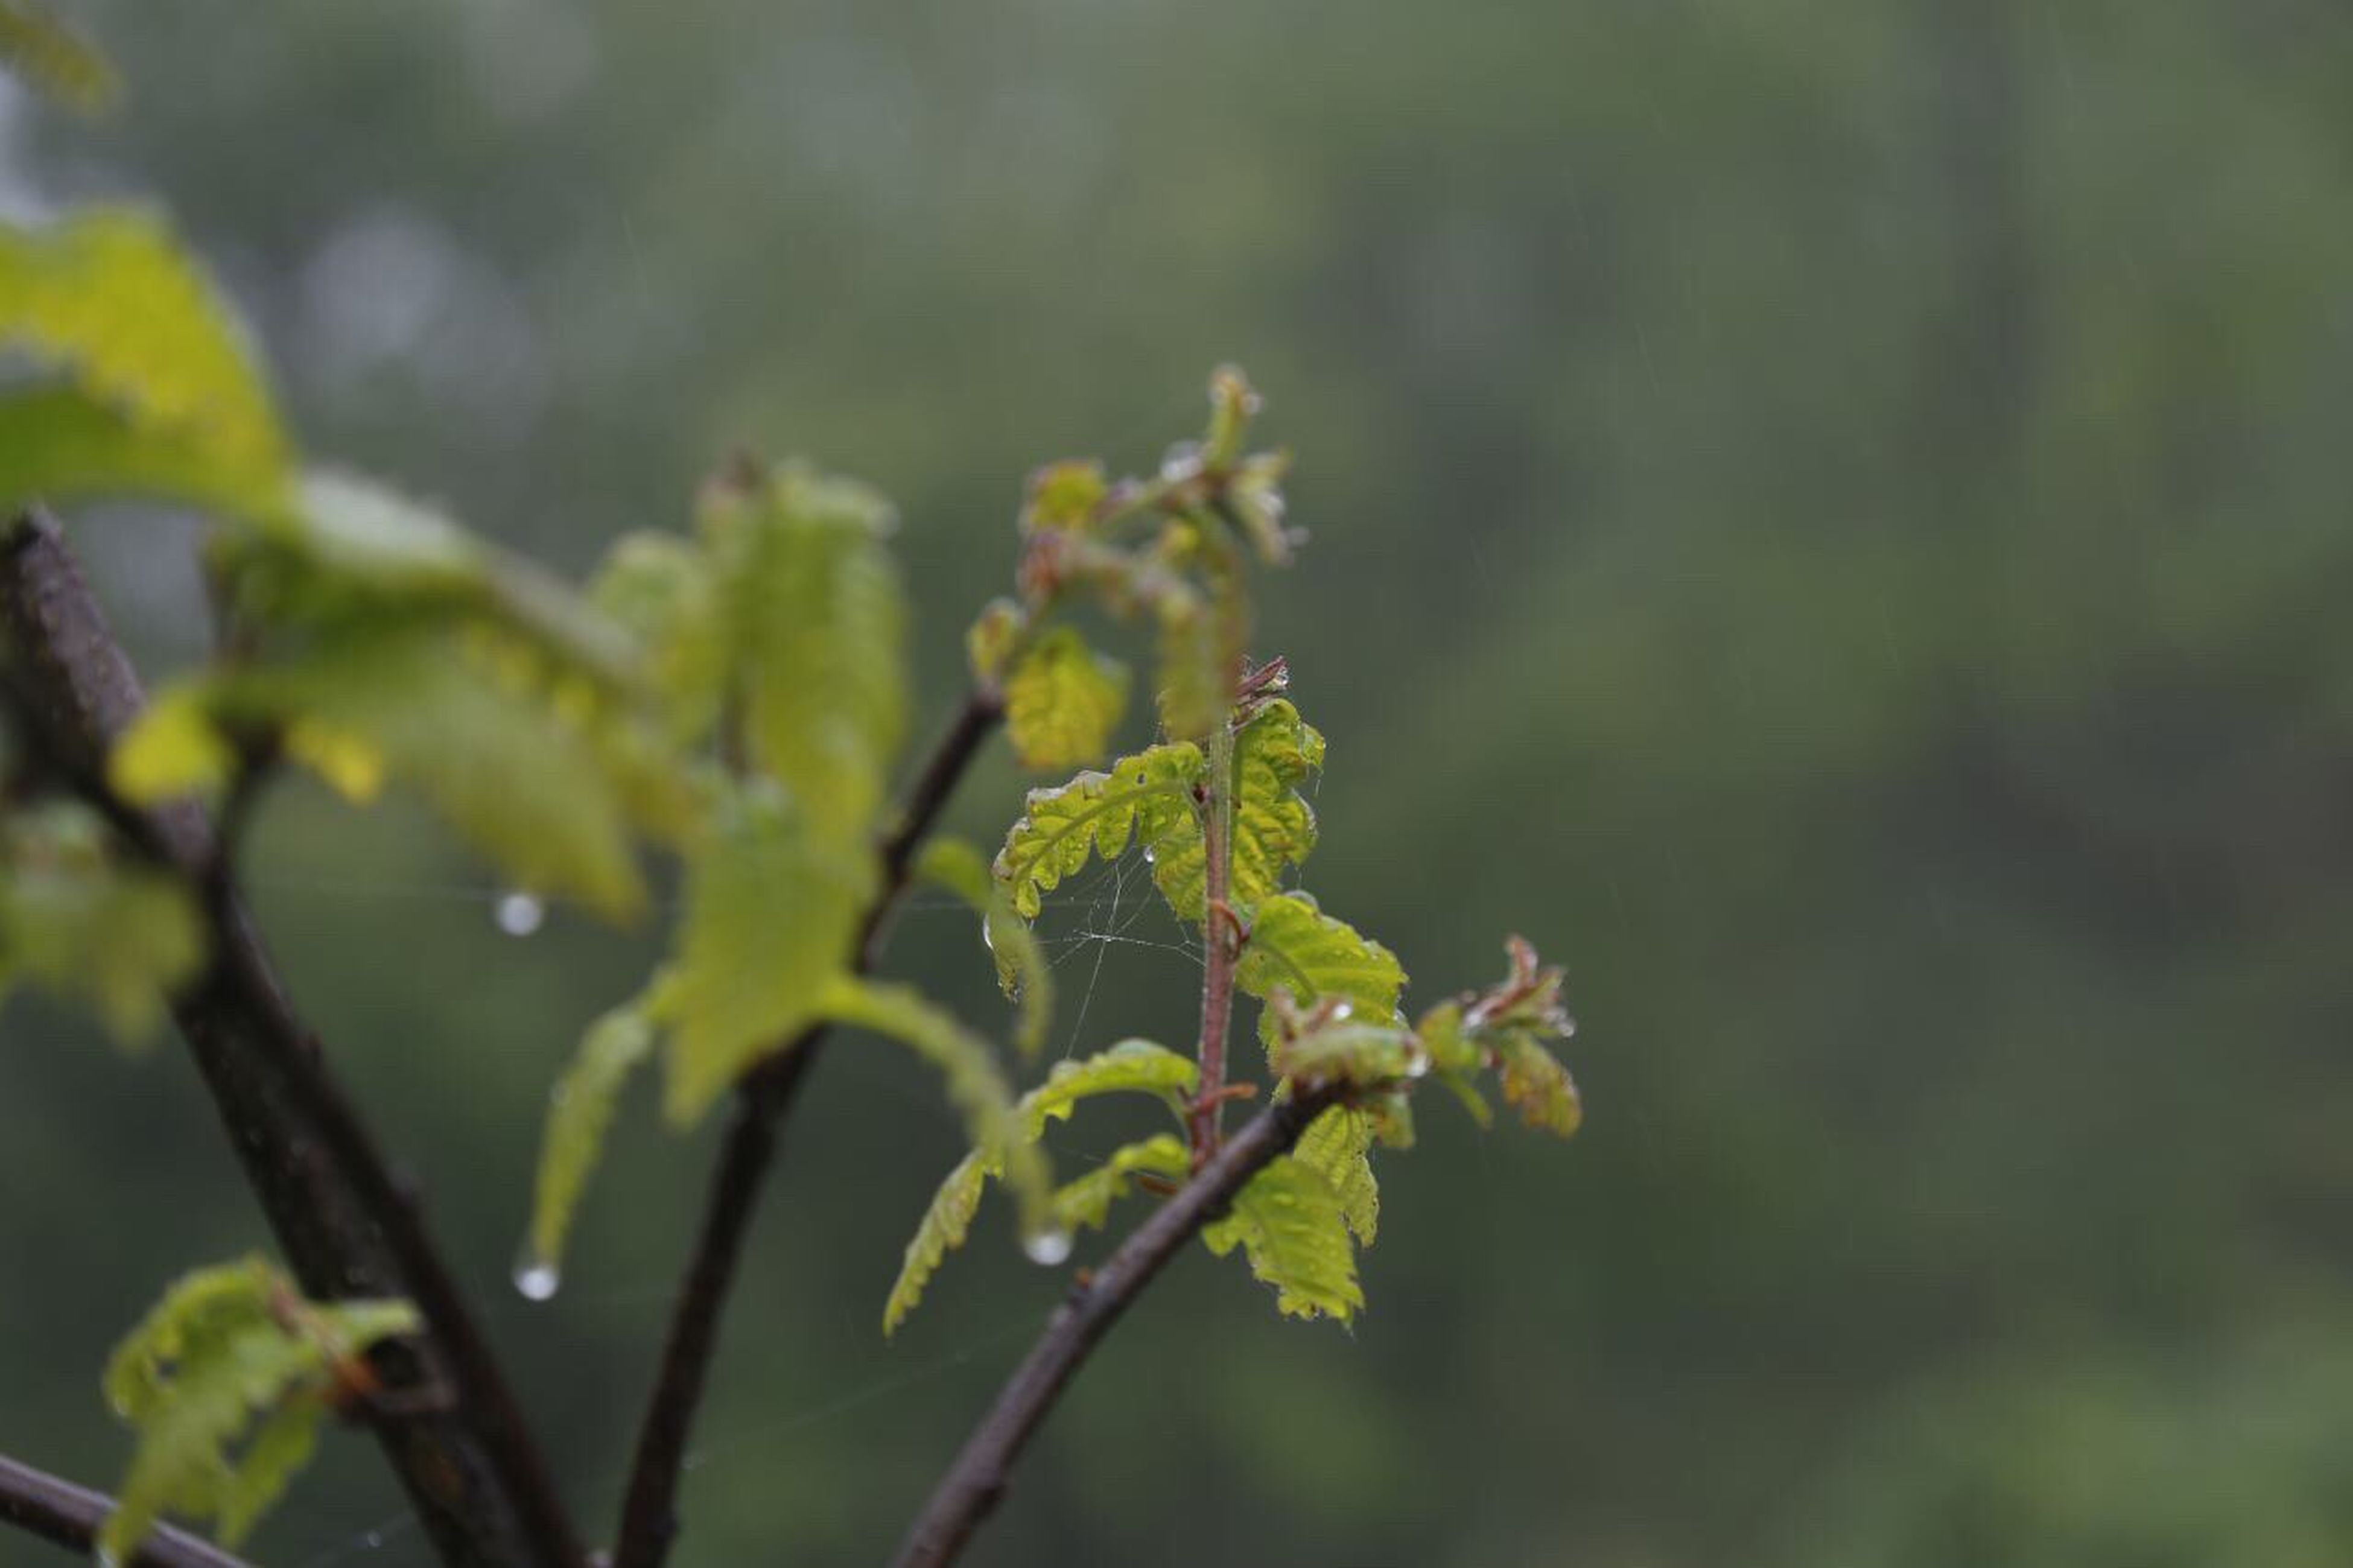 focus on foreground, growth, close-up, plant, nature, selective focus, leaf, green color, beauty in nature, stem, twig, outdoors, day, tranquility, no people, freshness, fragility, branch, growing, bud